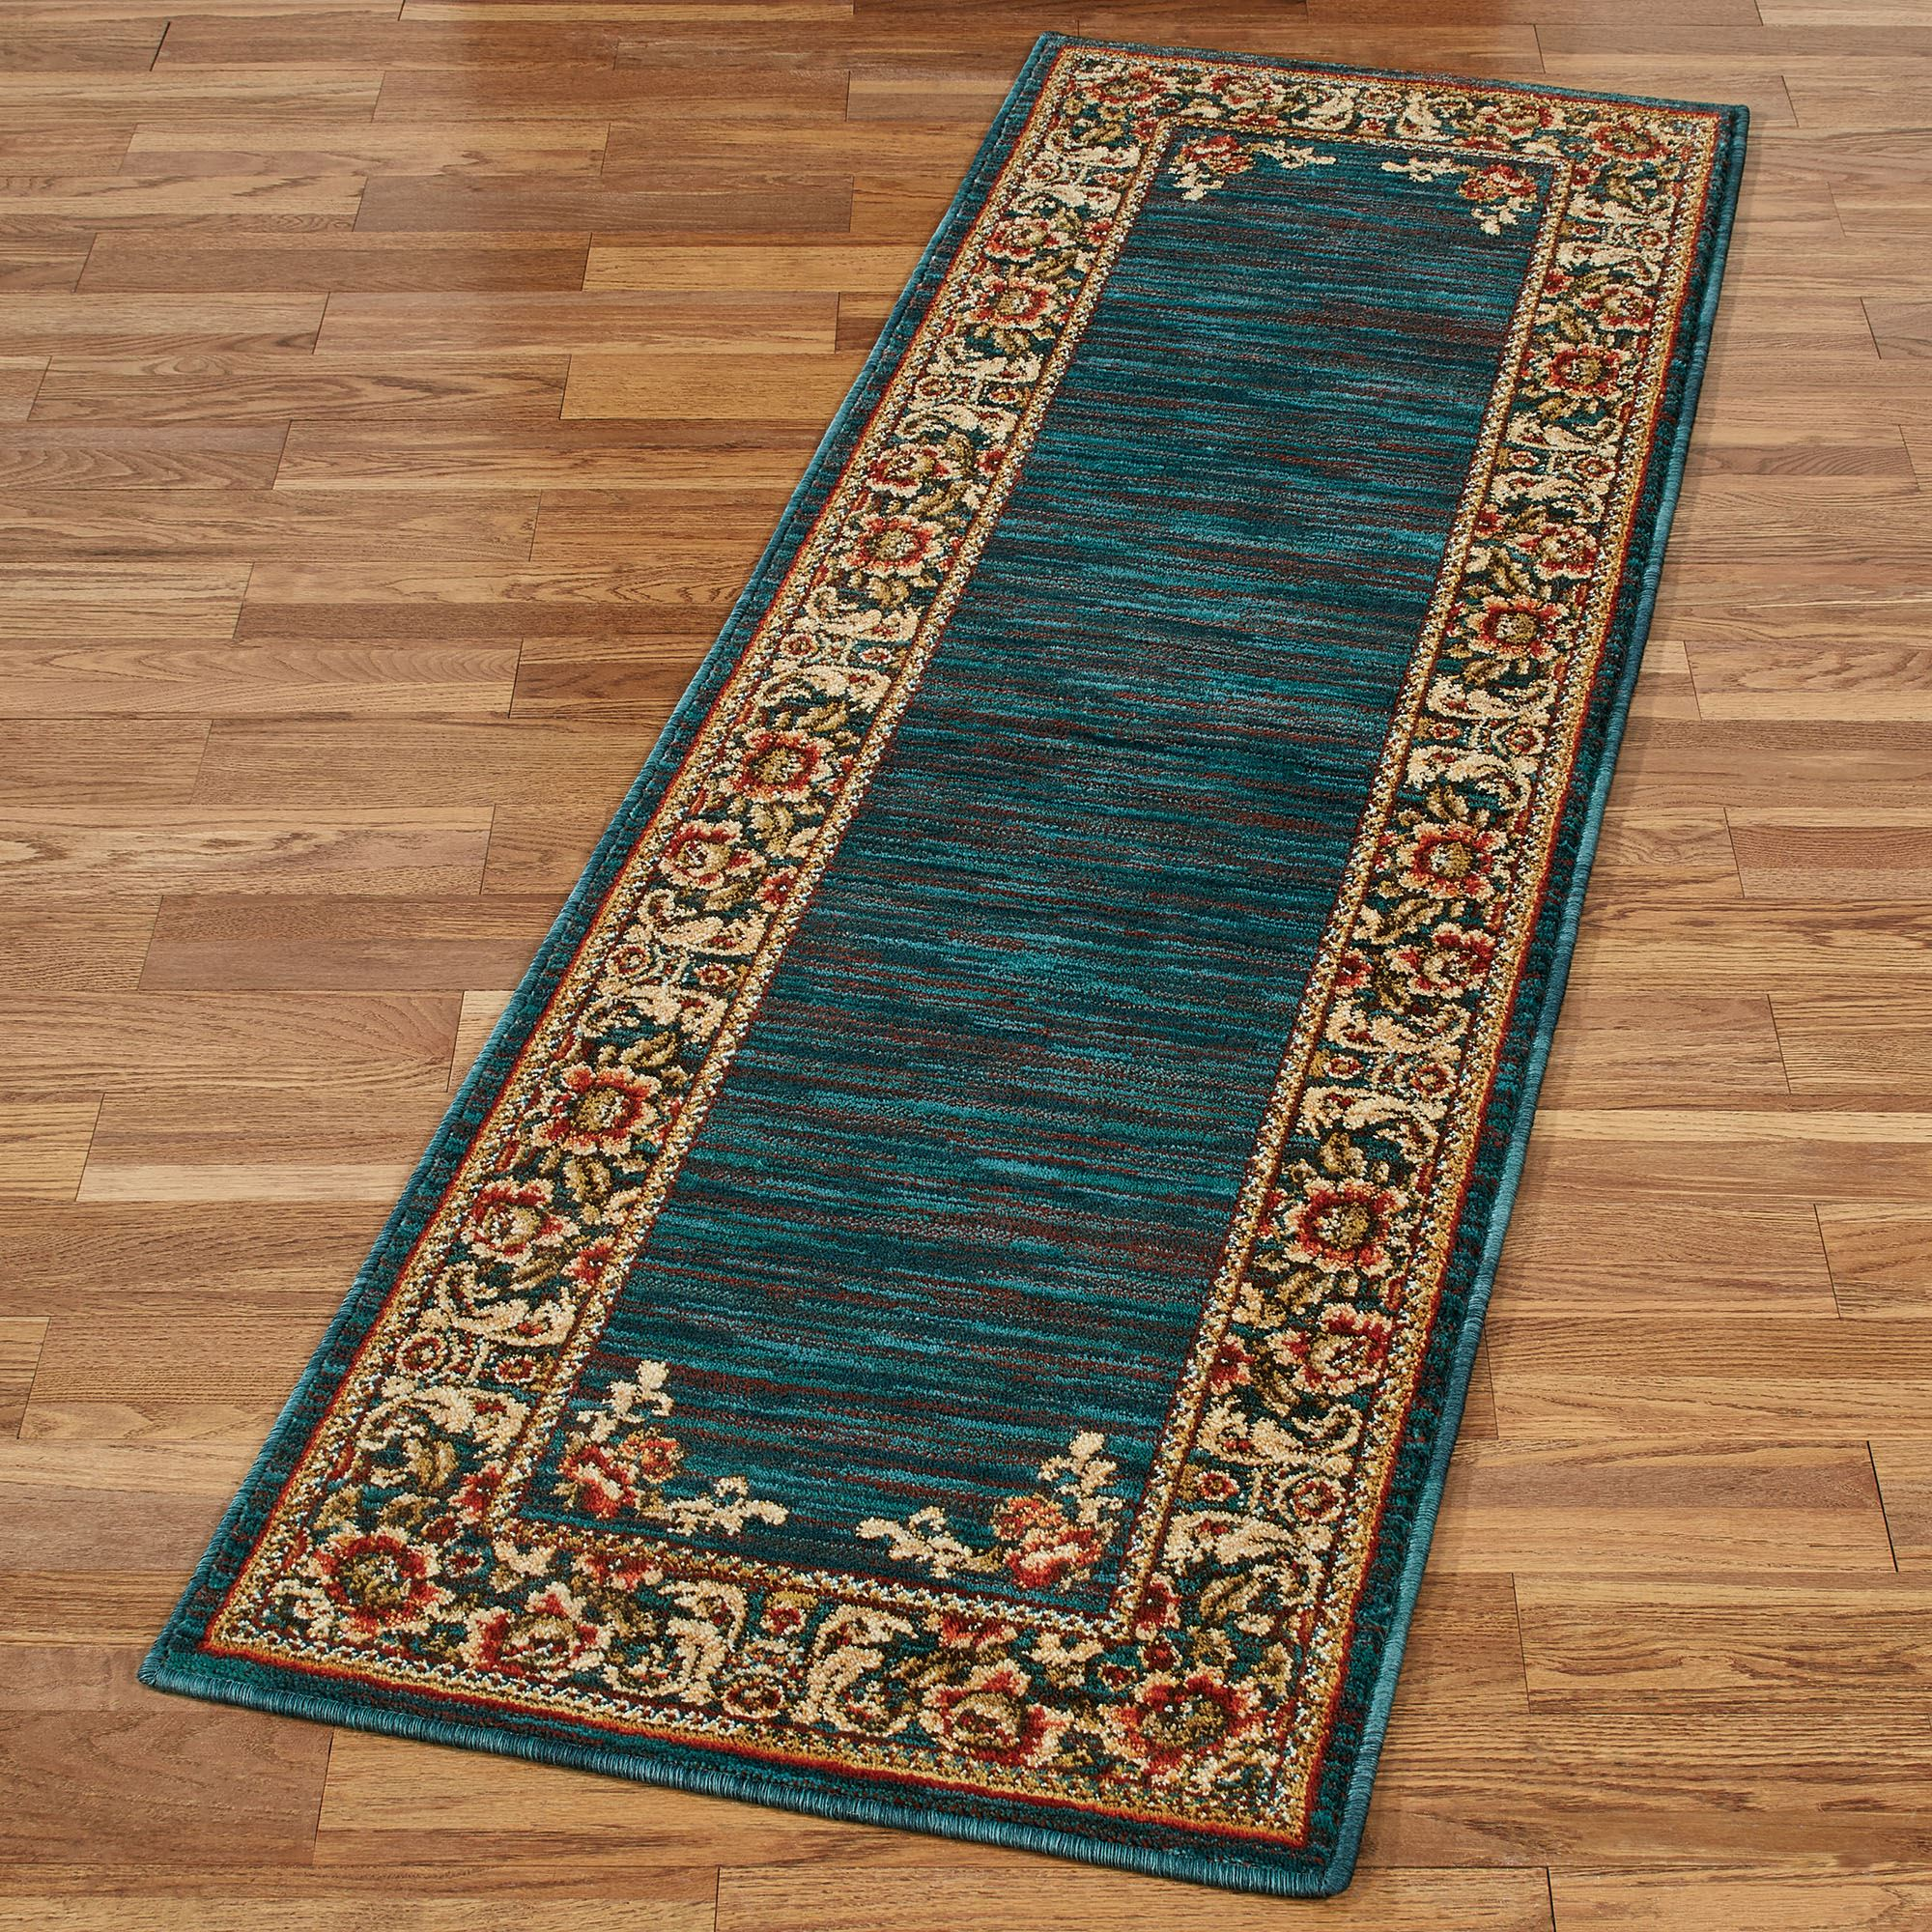 Florian Border Jacobean Floral Dark Teal Rug Runner